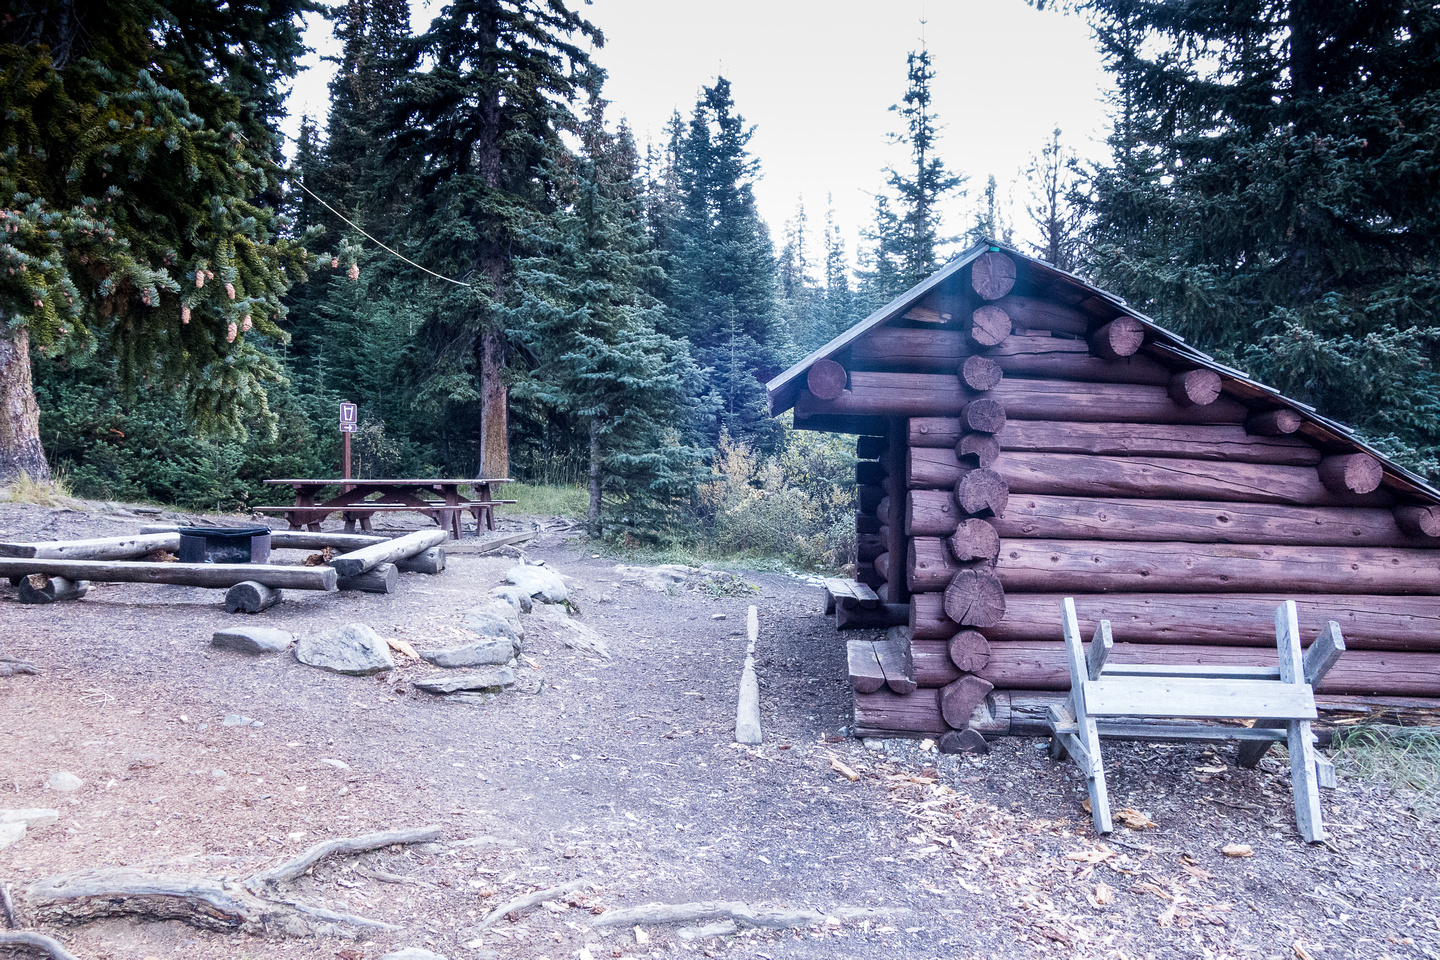 This shelter is much better than the open-walled shelters at Berg Lake and Whitehorn Campgrounds.